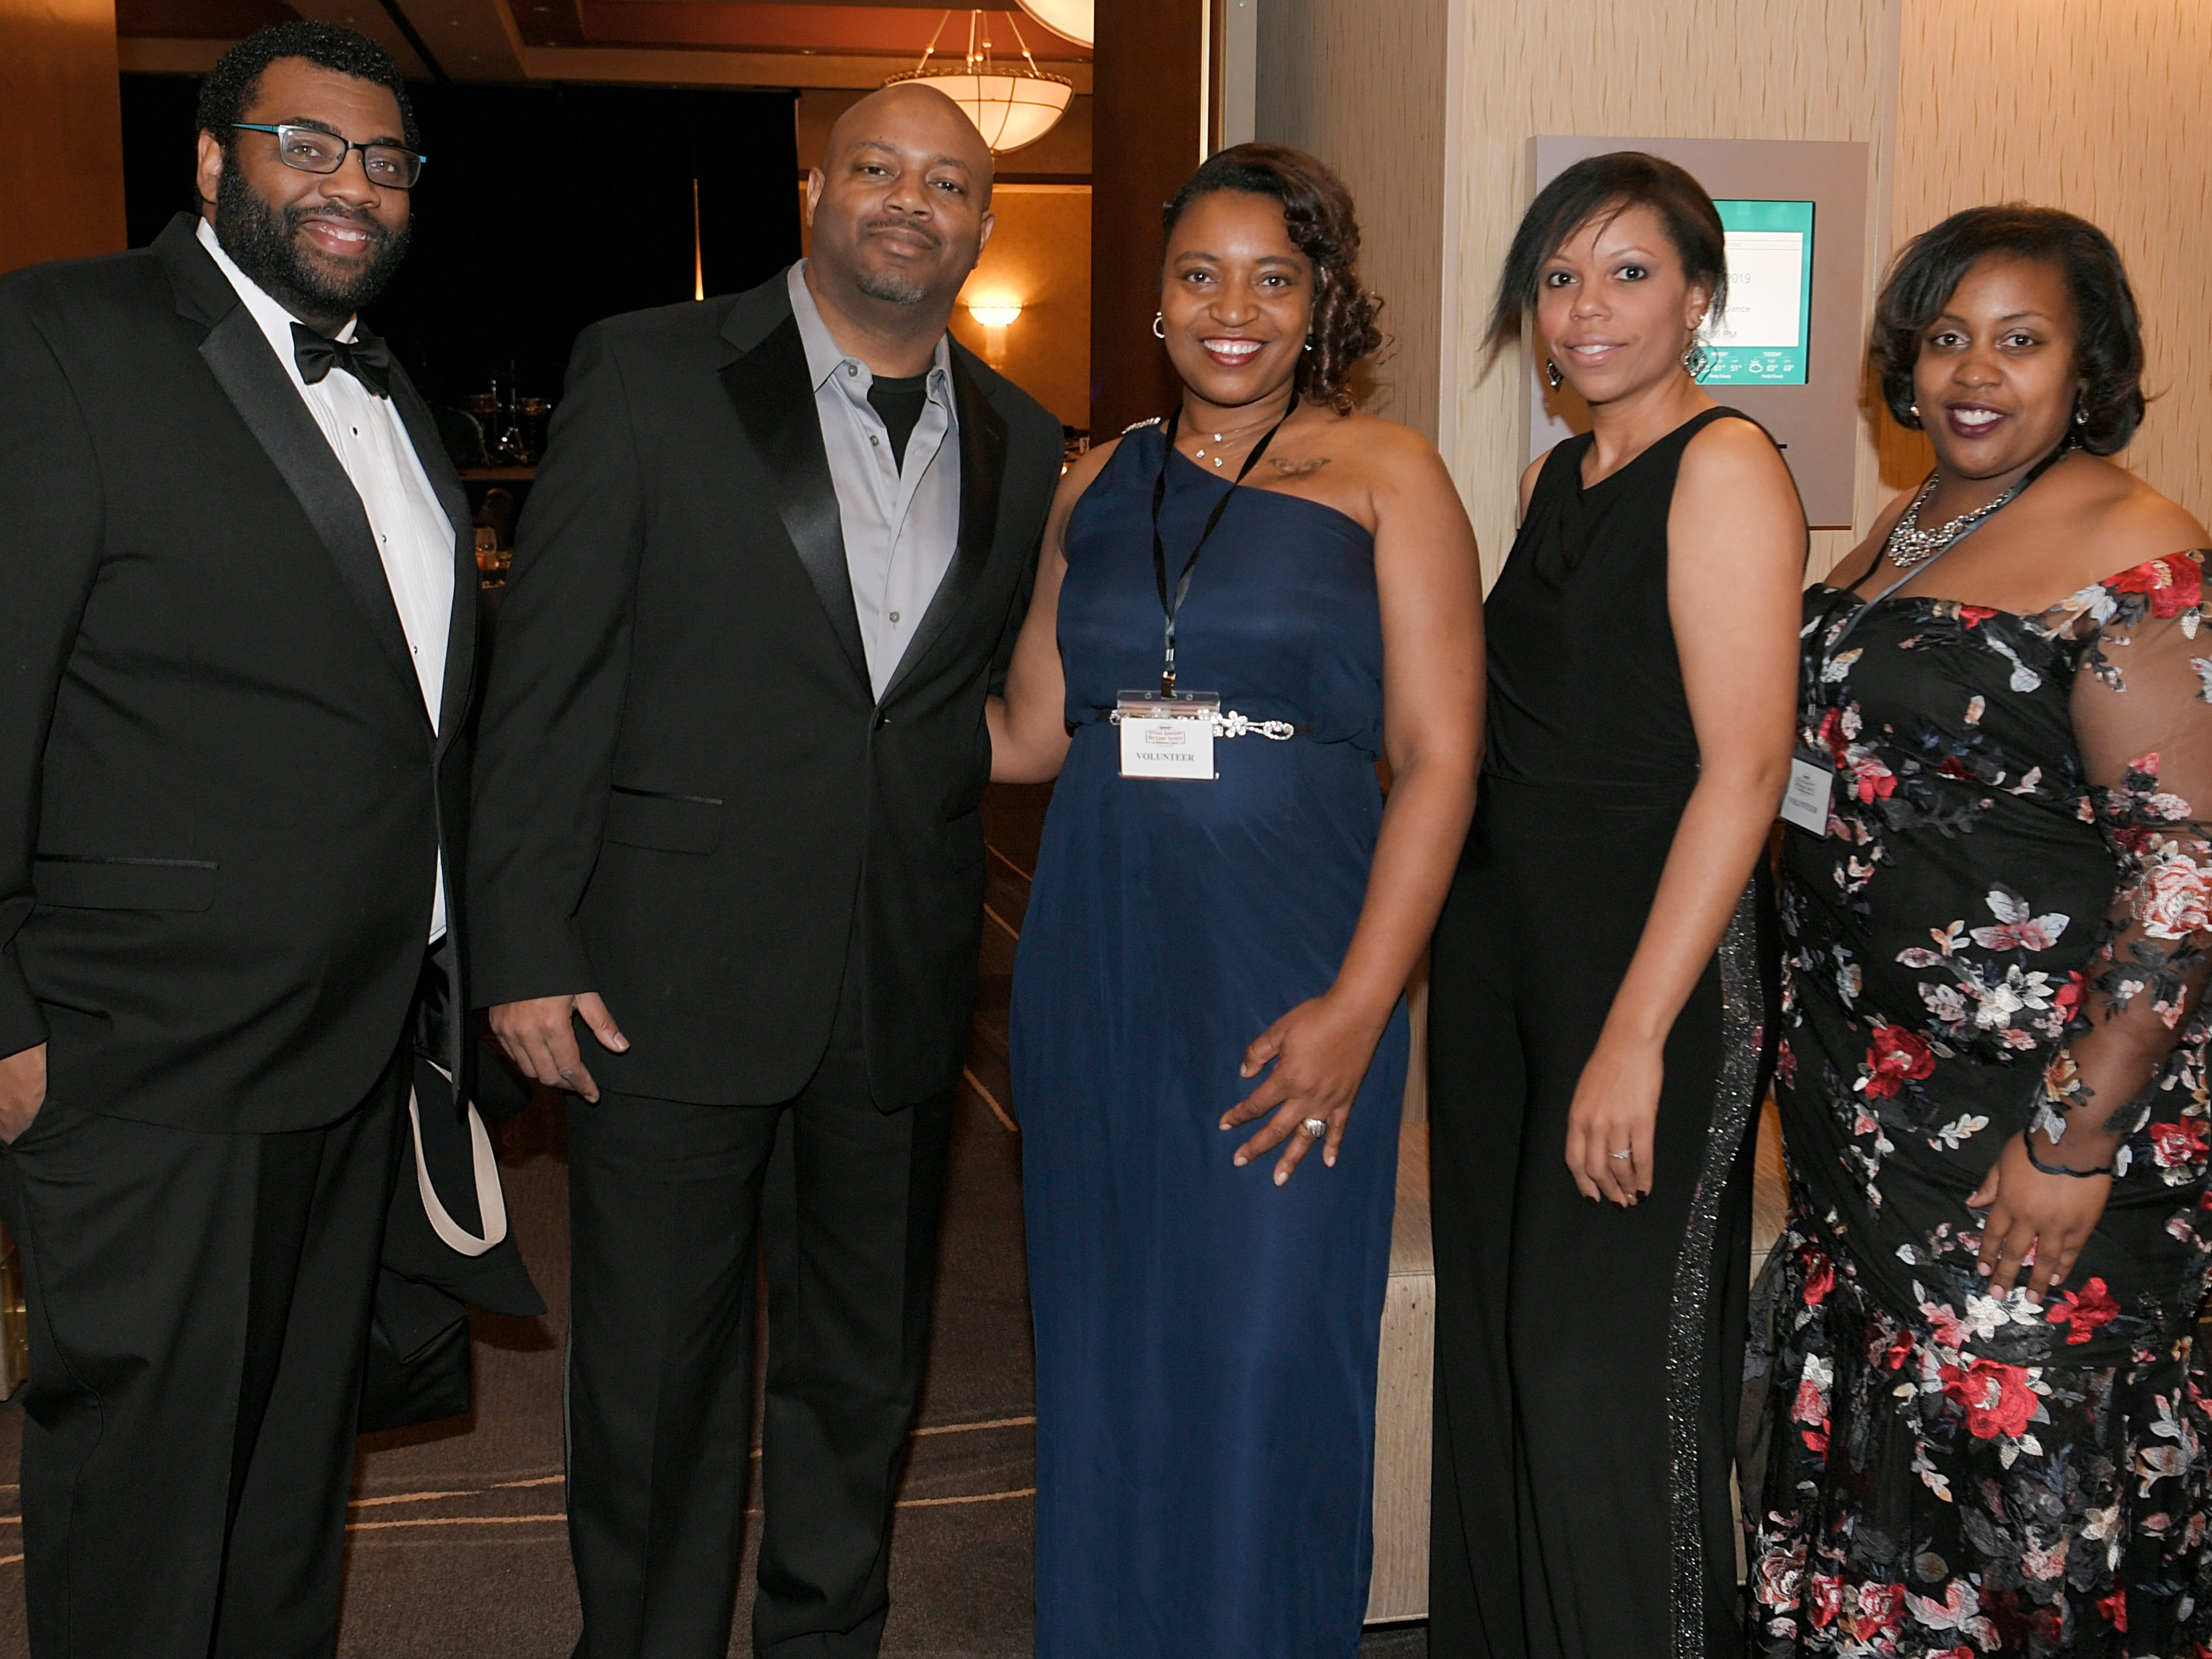 Reico Carter, Tim Johnson, Sonya Johnson, Samantha DeGrasse and Ashley Patterson at the African American Heritage Society's 18th Annual Black Tie Affair at the Embassy Suites in Franklin on Sat., Feb. 2, 2019.